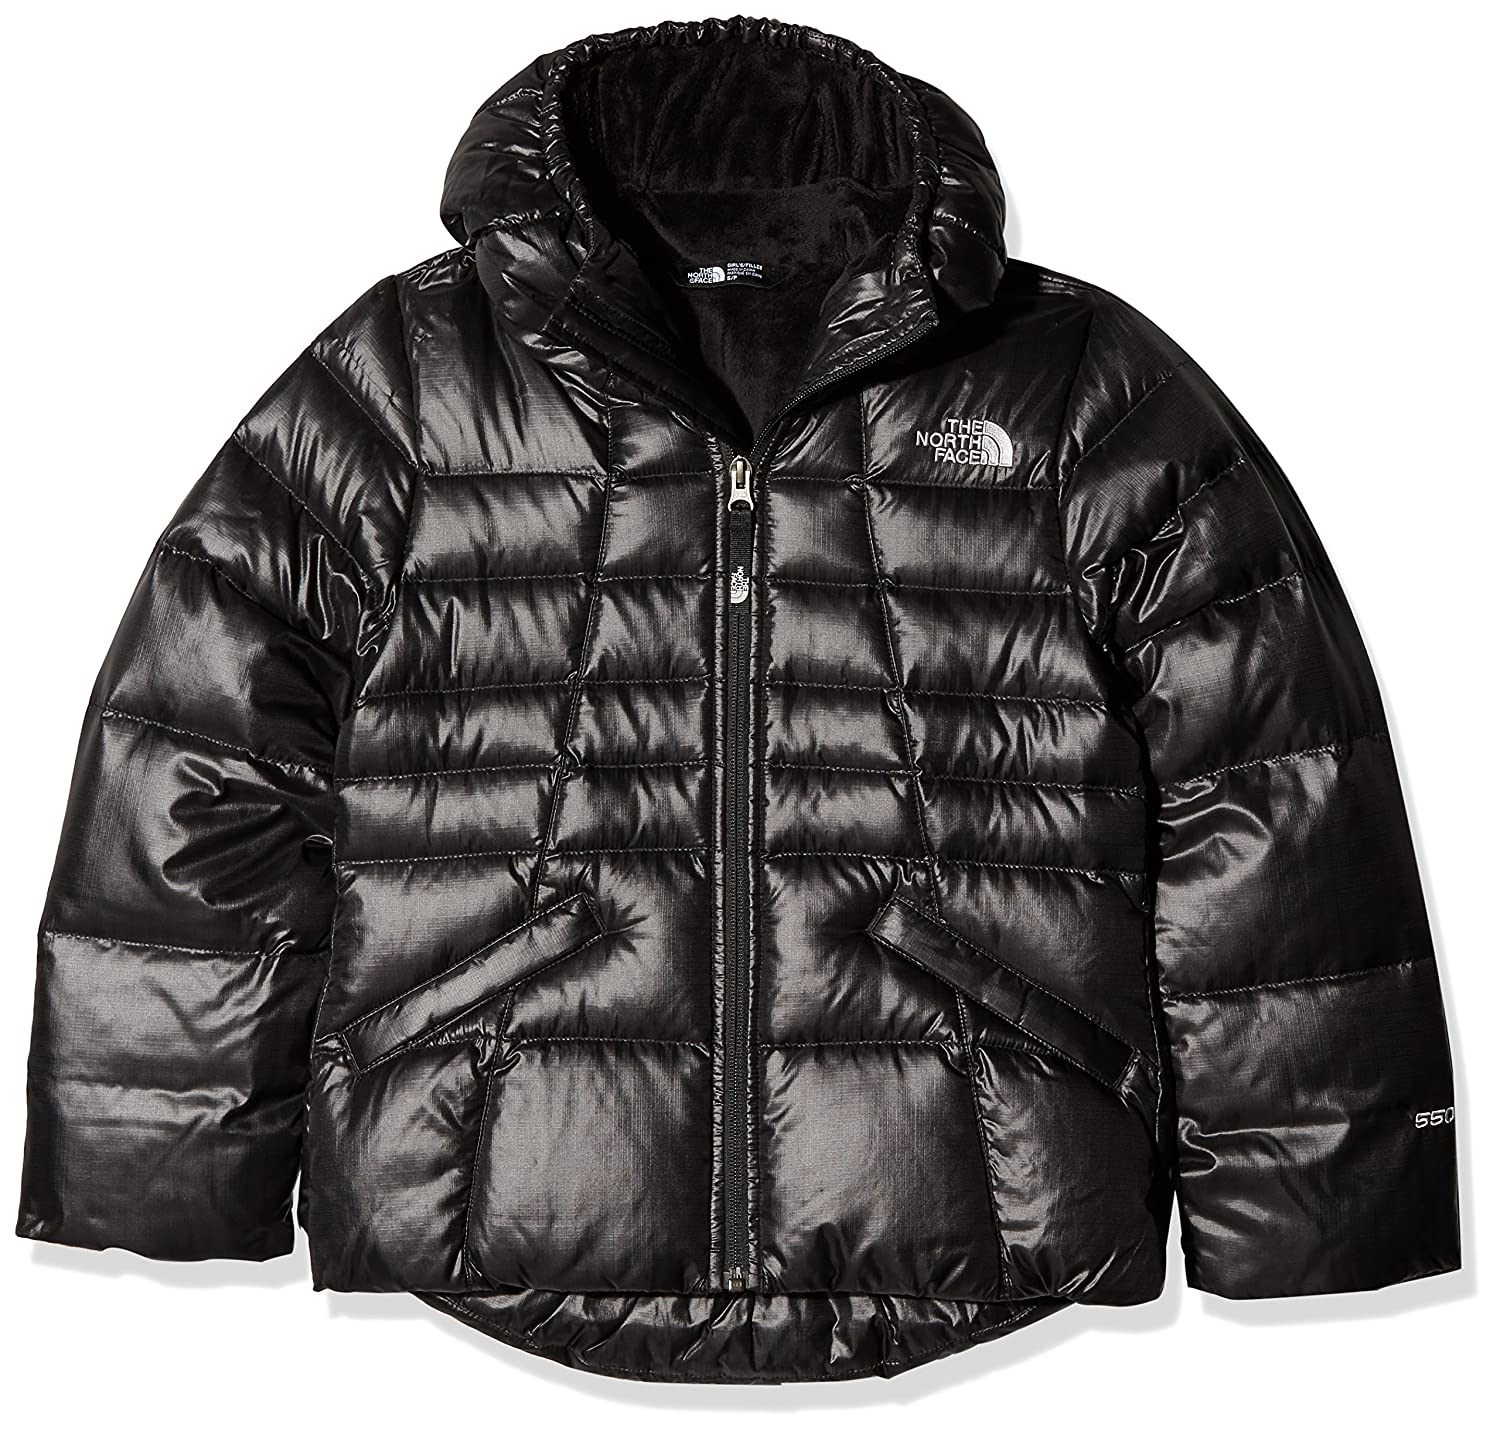 The North Face Youth Girls' Moondoggy 2.0 Hoodie (Sizes S - XL)